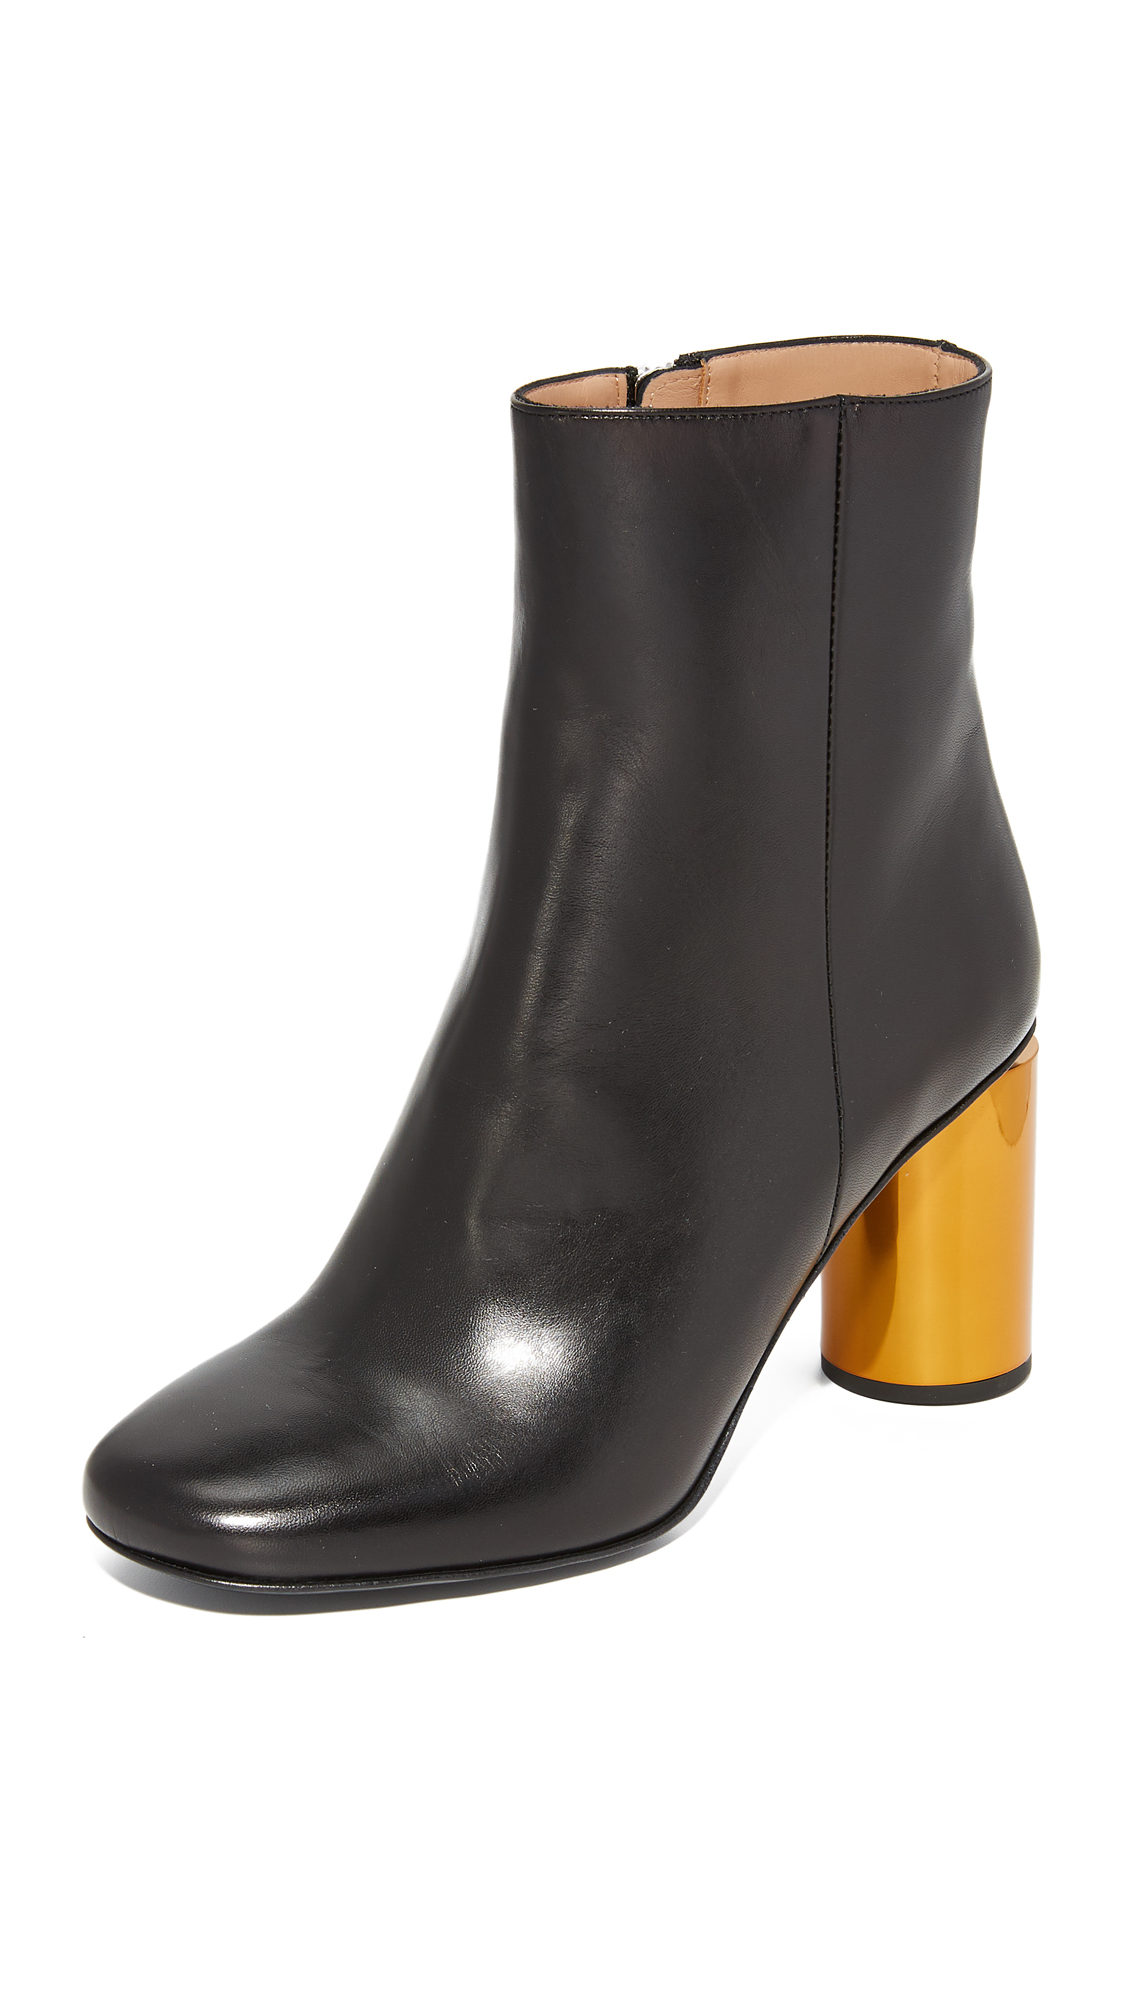 Acne Studios Allis Booties - Black/Camel